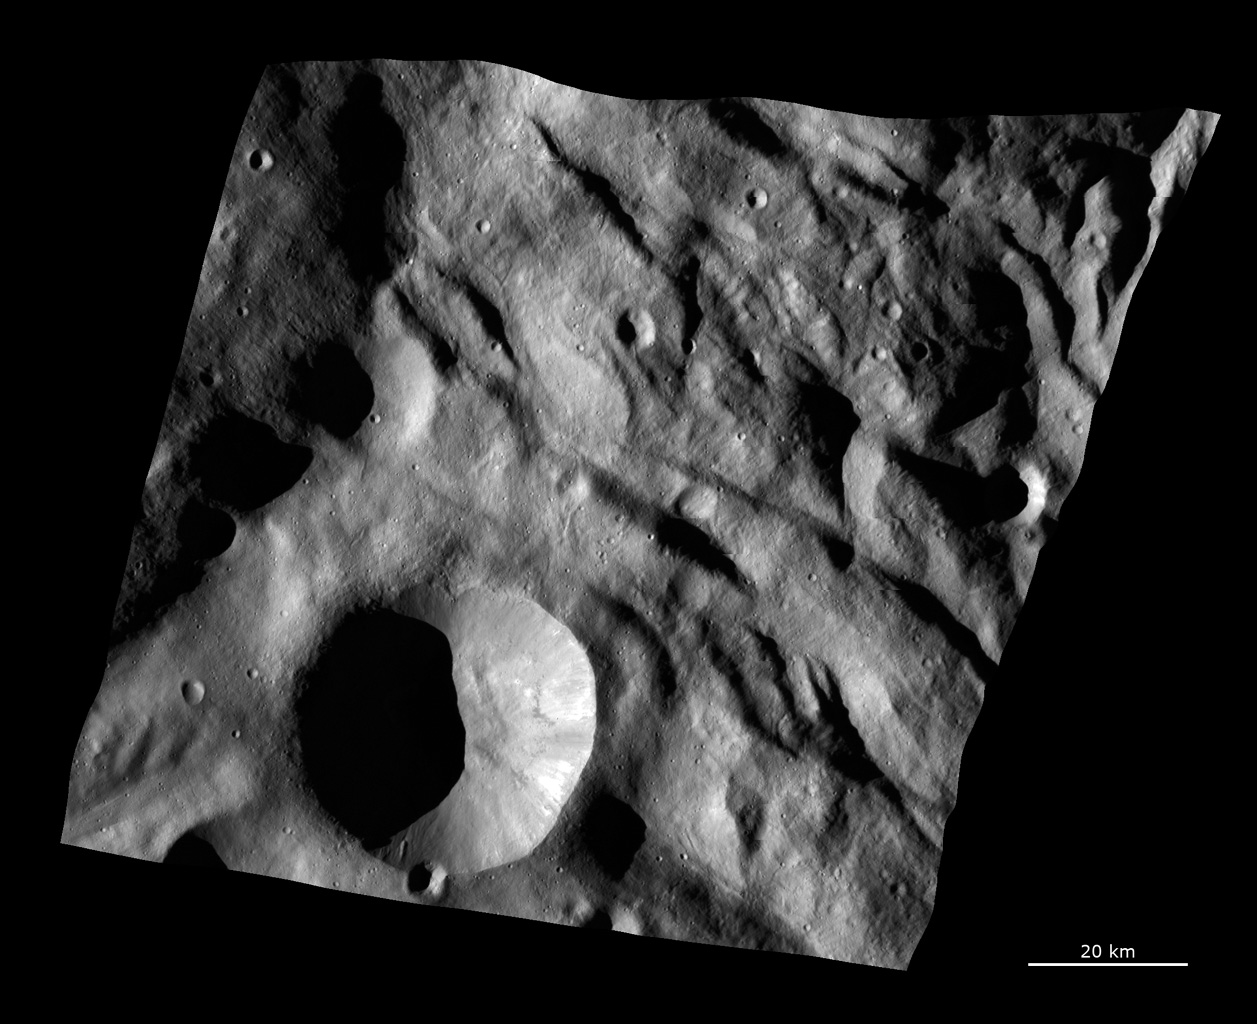 Complex Surface Texture in Vesta's Southern Hemisphere